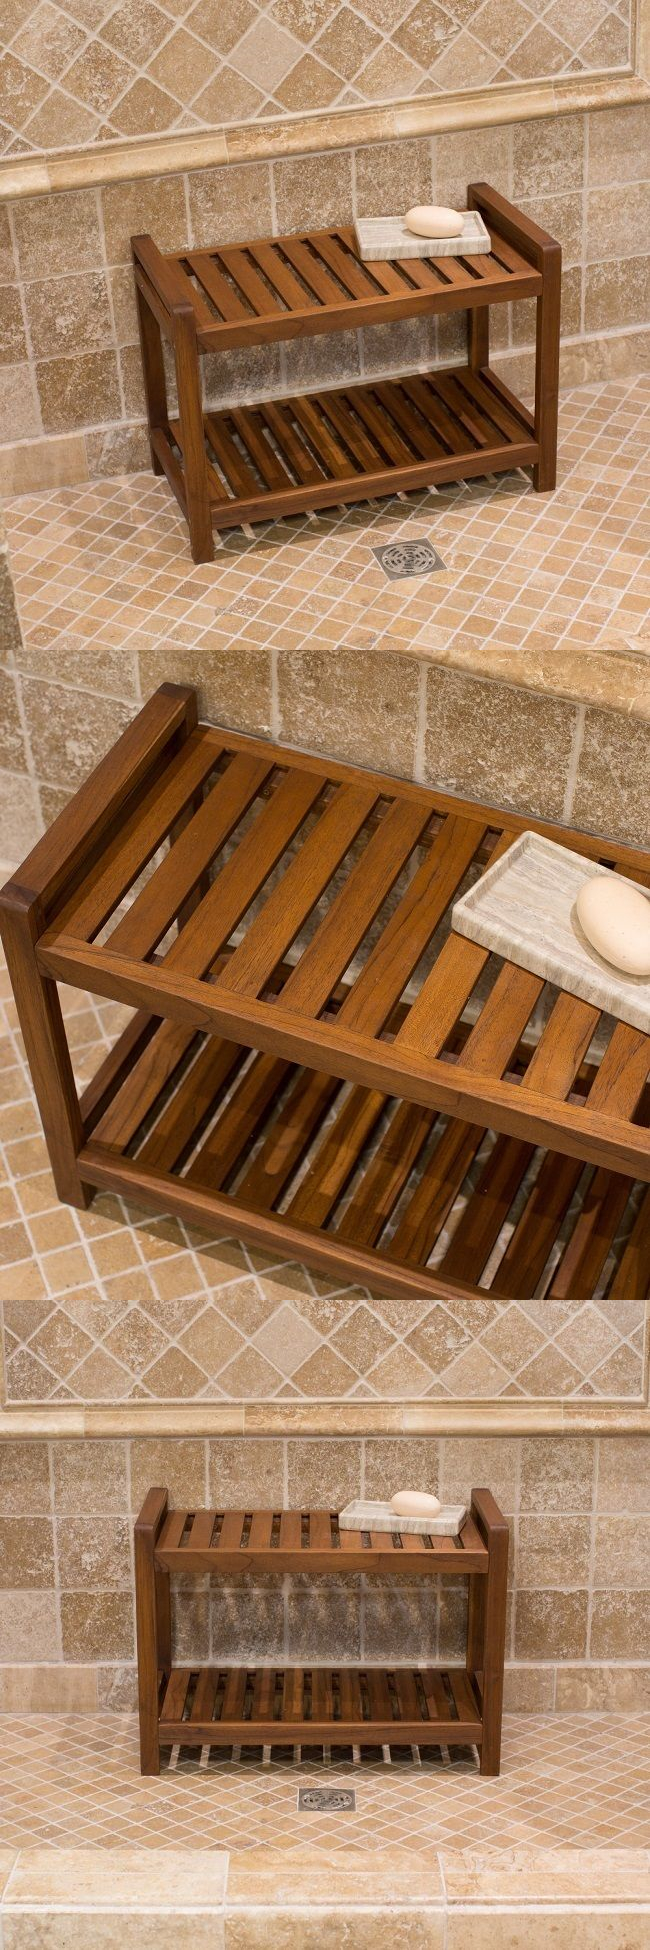 Shower and Bath Seats: Teak Shower Bench With Shelf Wood Seat ...